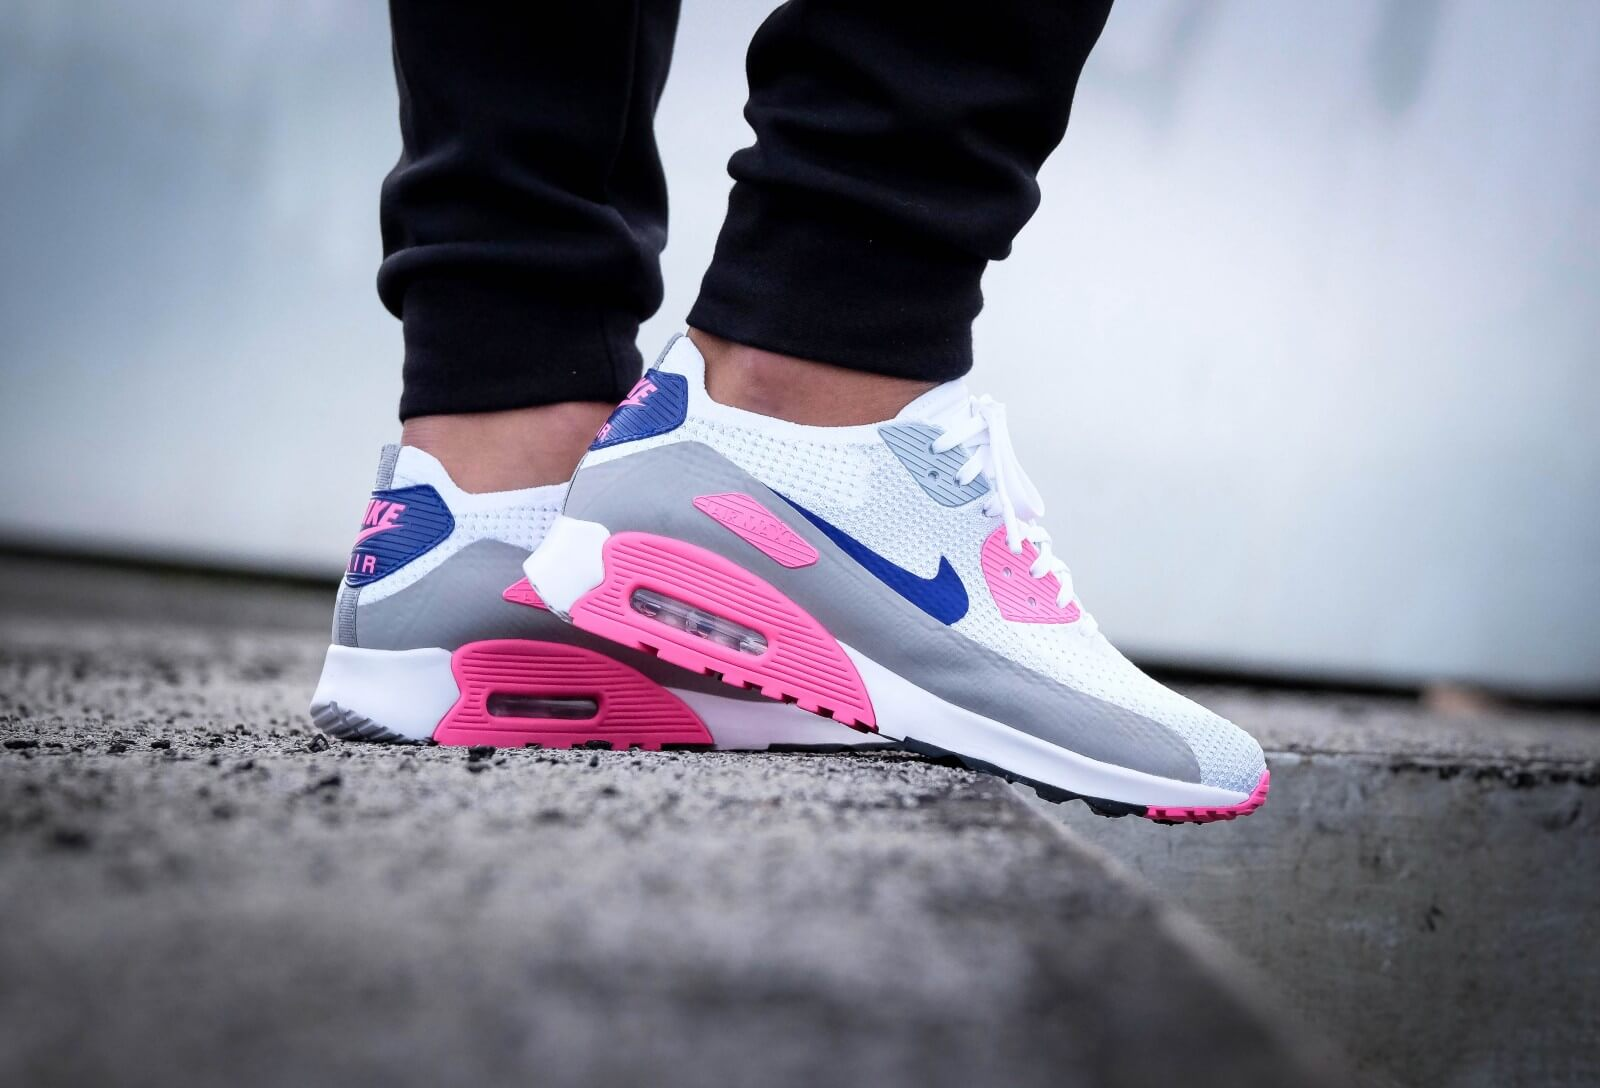 Laser Pink Nike Air Max 90 Nike WMNS Air Max 90 Ultra 2.0 Flyknit White/Concord-Laser Pink ...